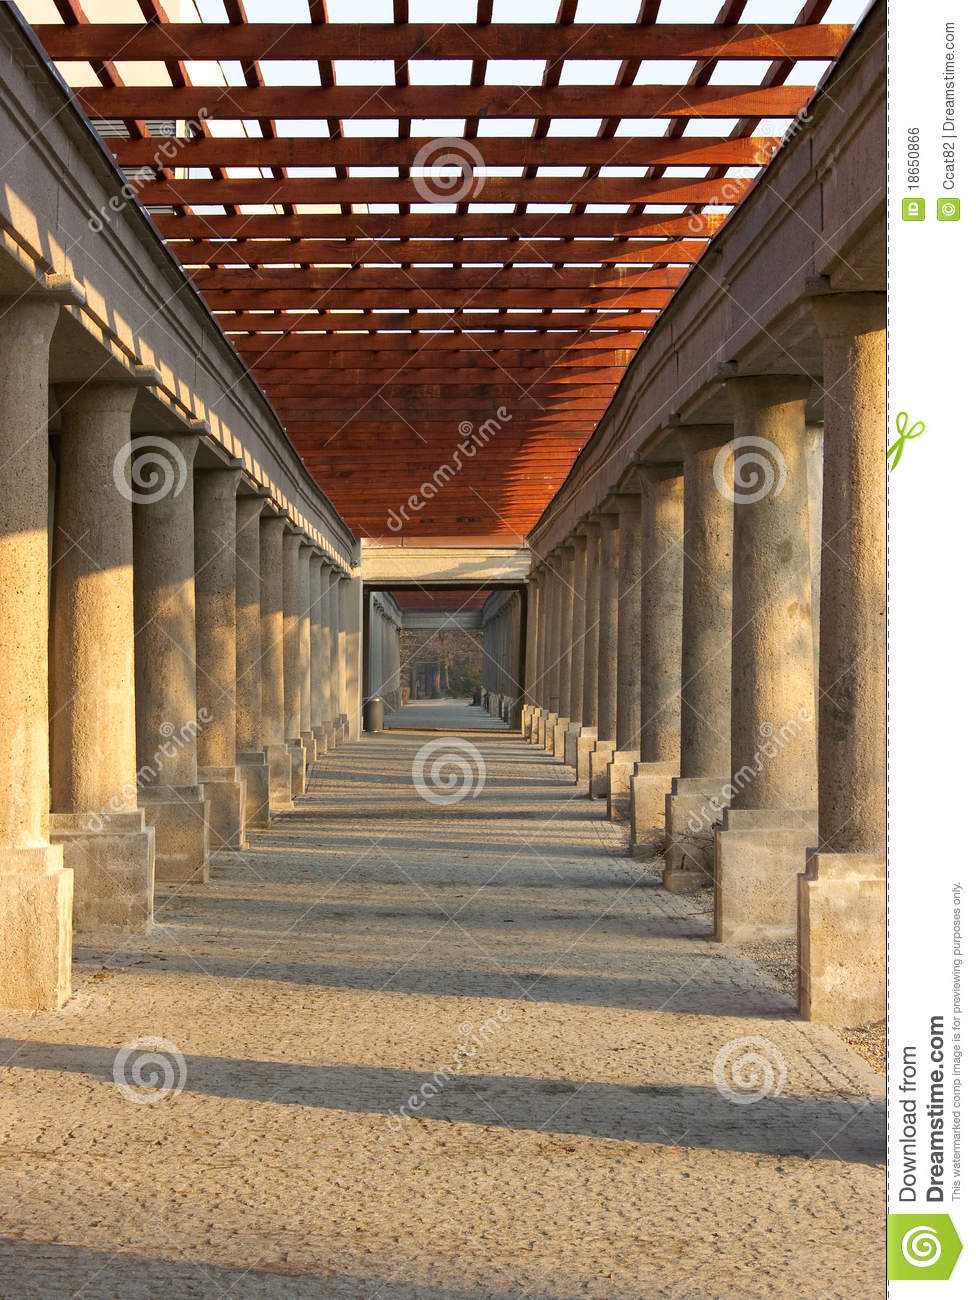 Pergola With Stone Columns Stock Photo Image Of Archway